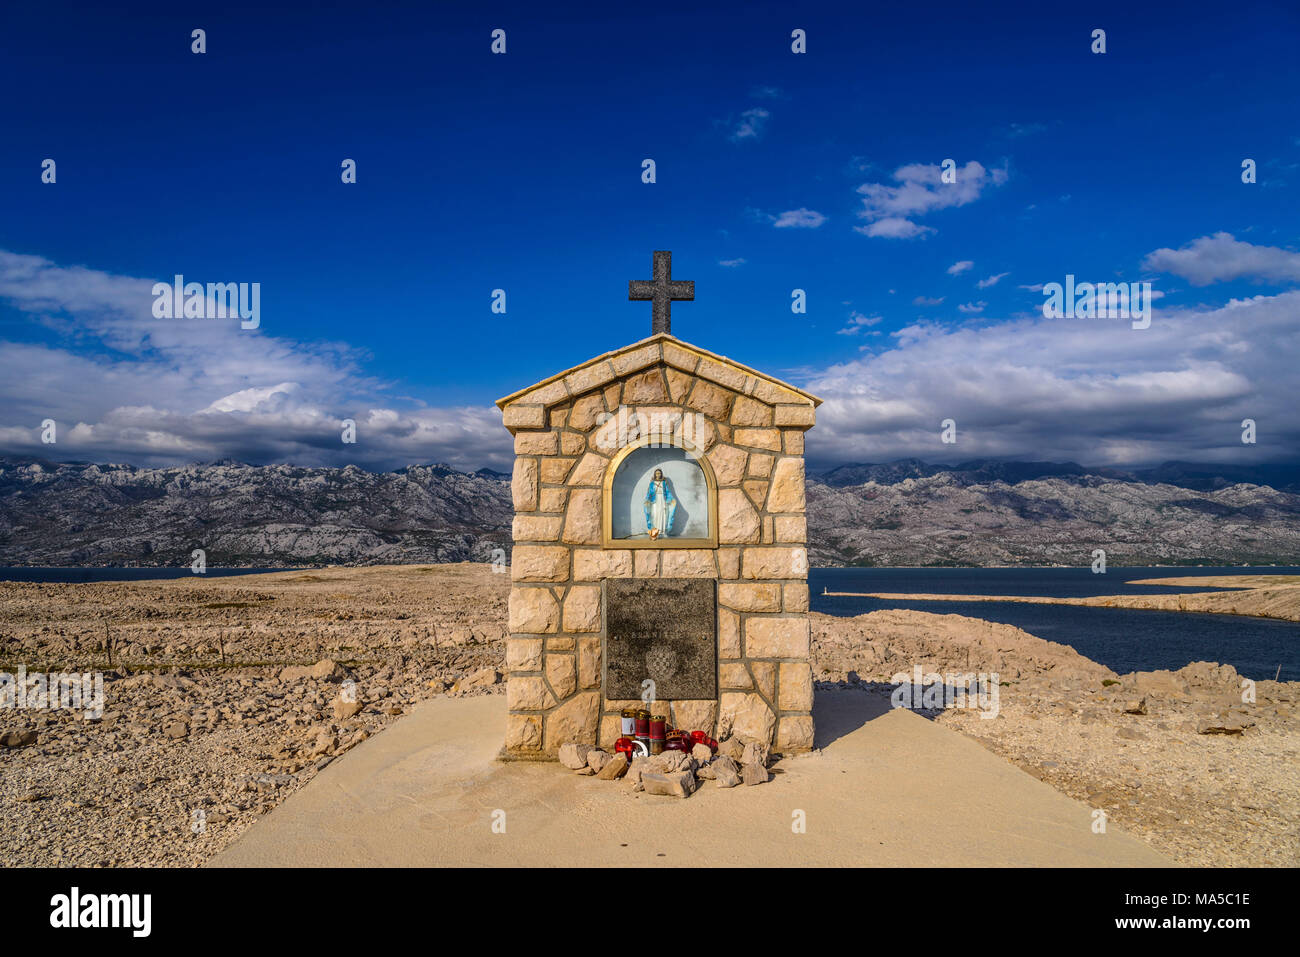 Croatia, Dalmatia, island of Pag, Miskovici, altar of Mary at the southern tip towards Velebit mountains Stock Photo